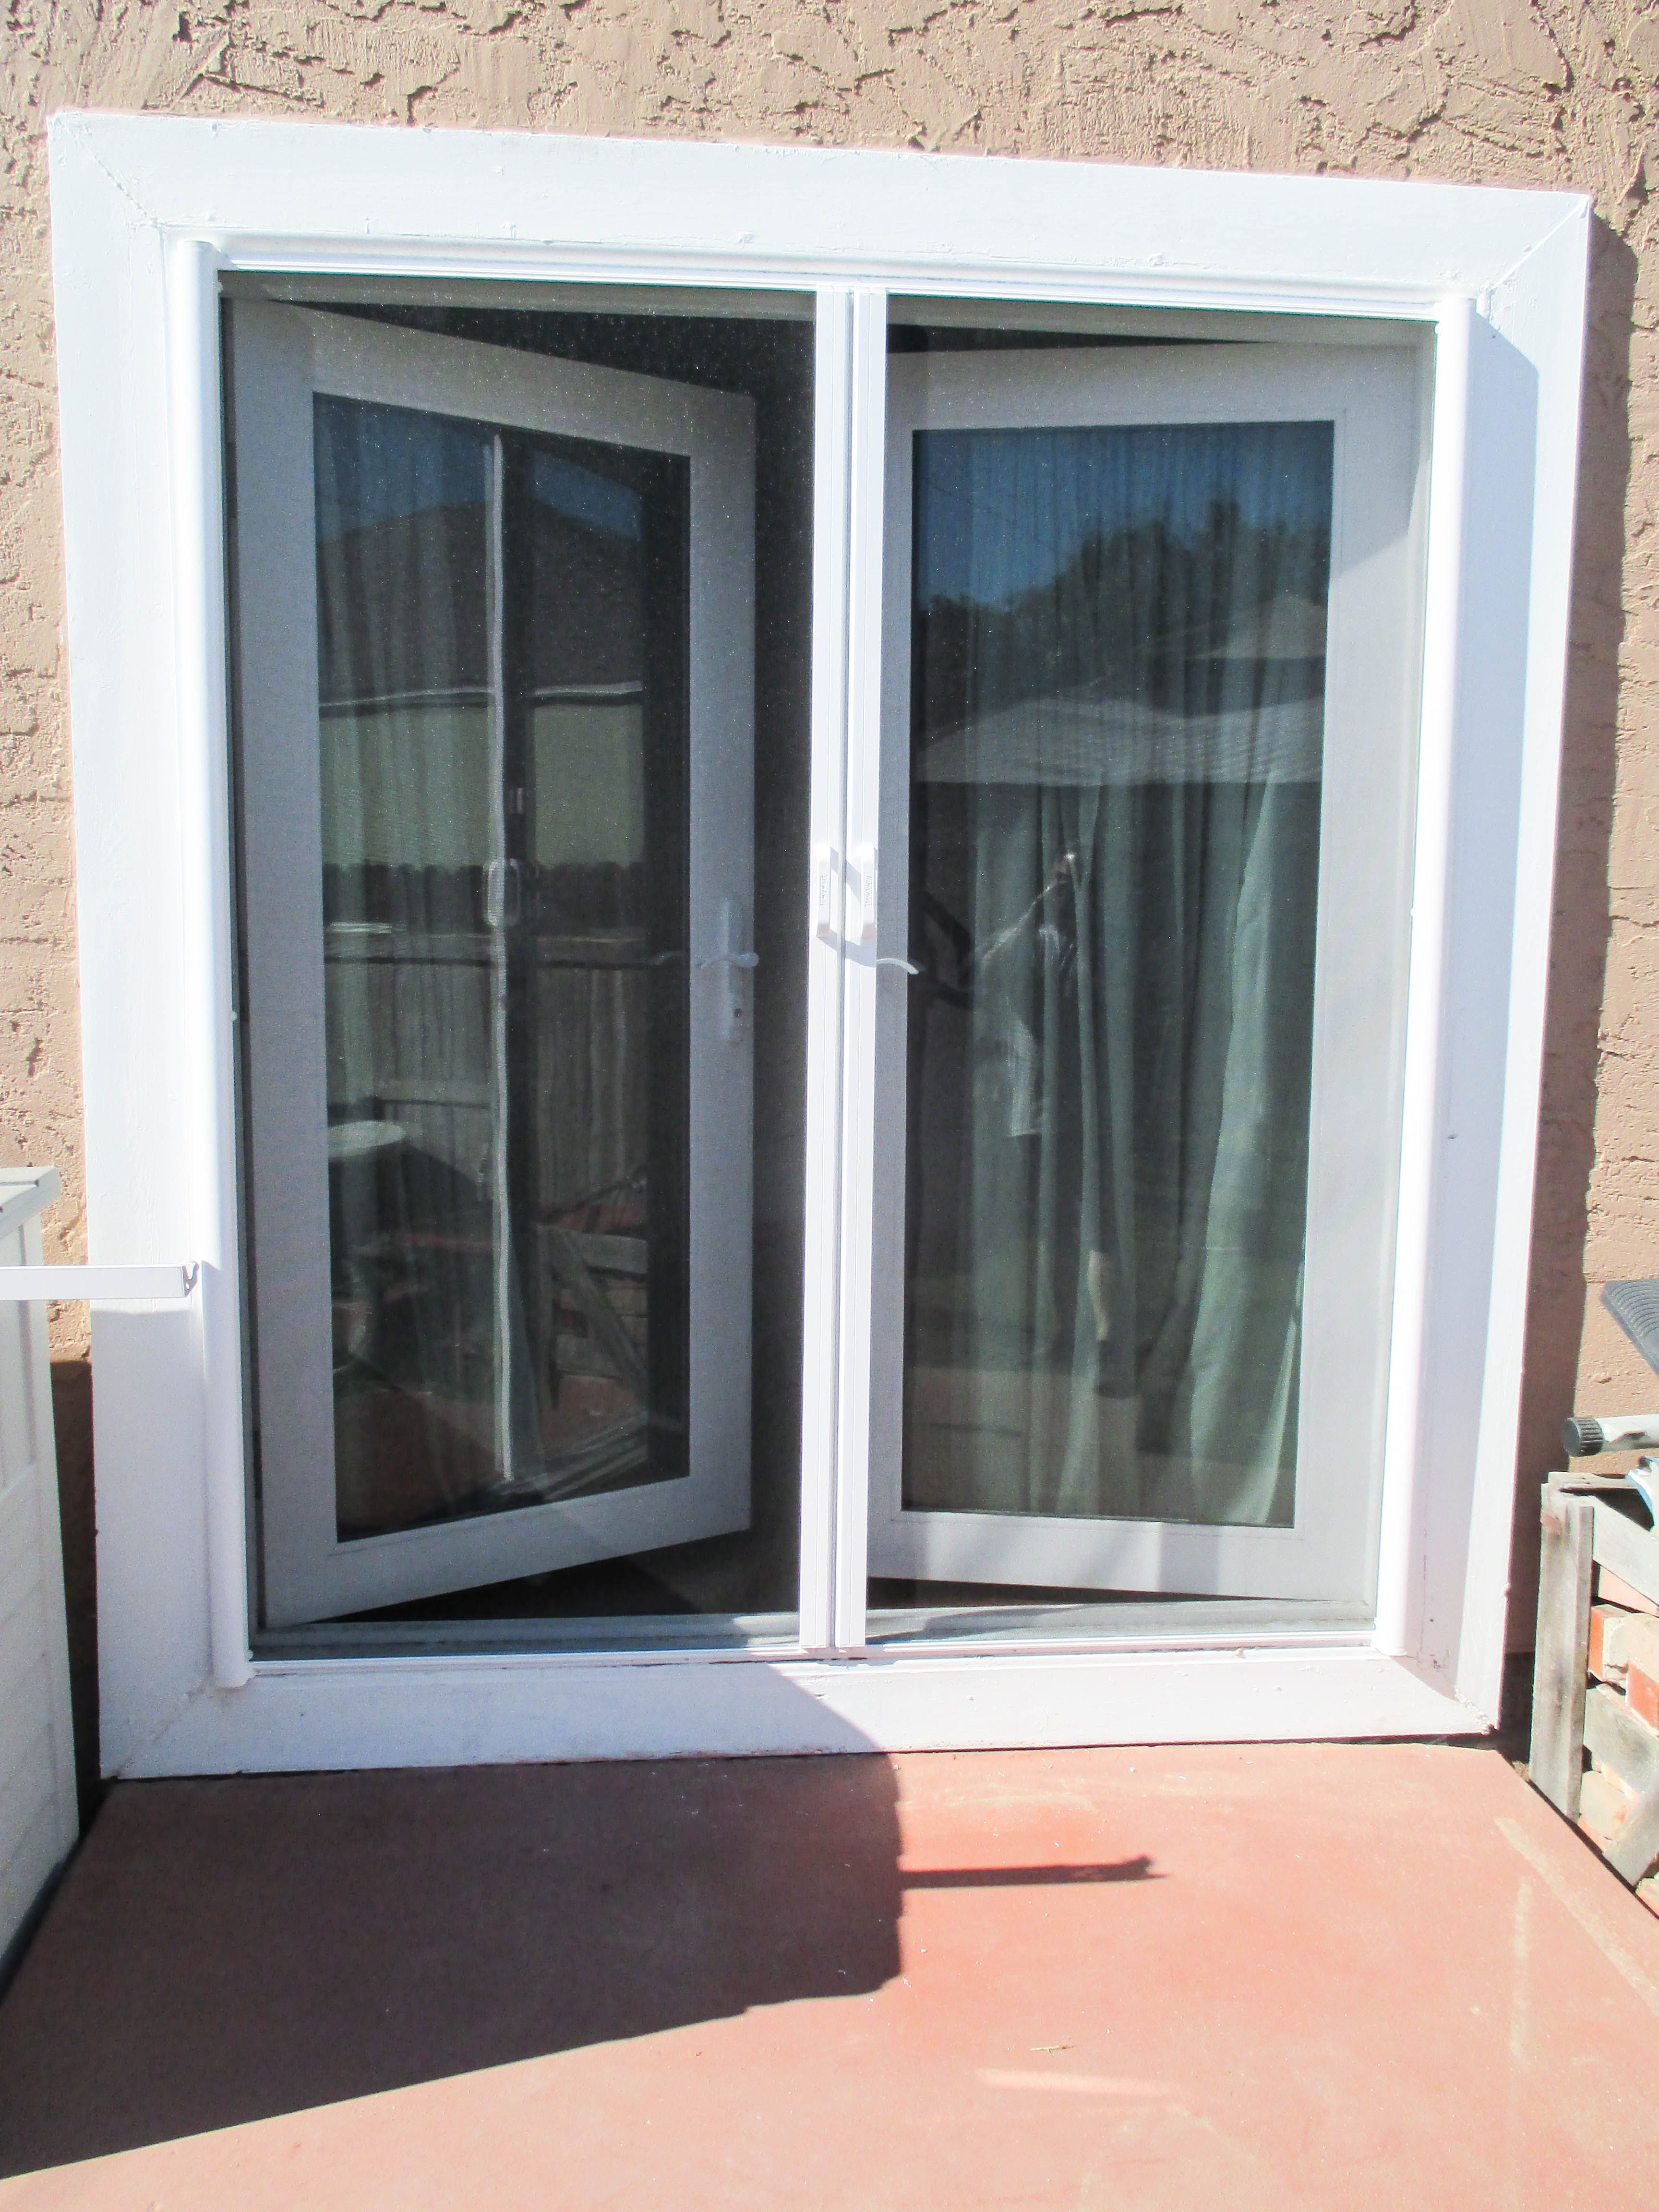 If You Have A Set Of French Doors Upgrade From Traditional Screen Doors To Retractable Screen Doors Kee Retractable Screen Door House Bugs Retractable Screen